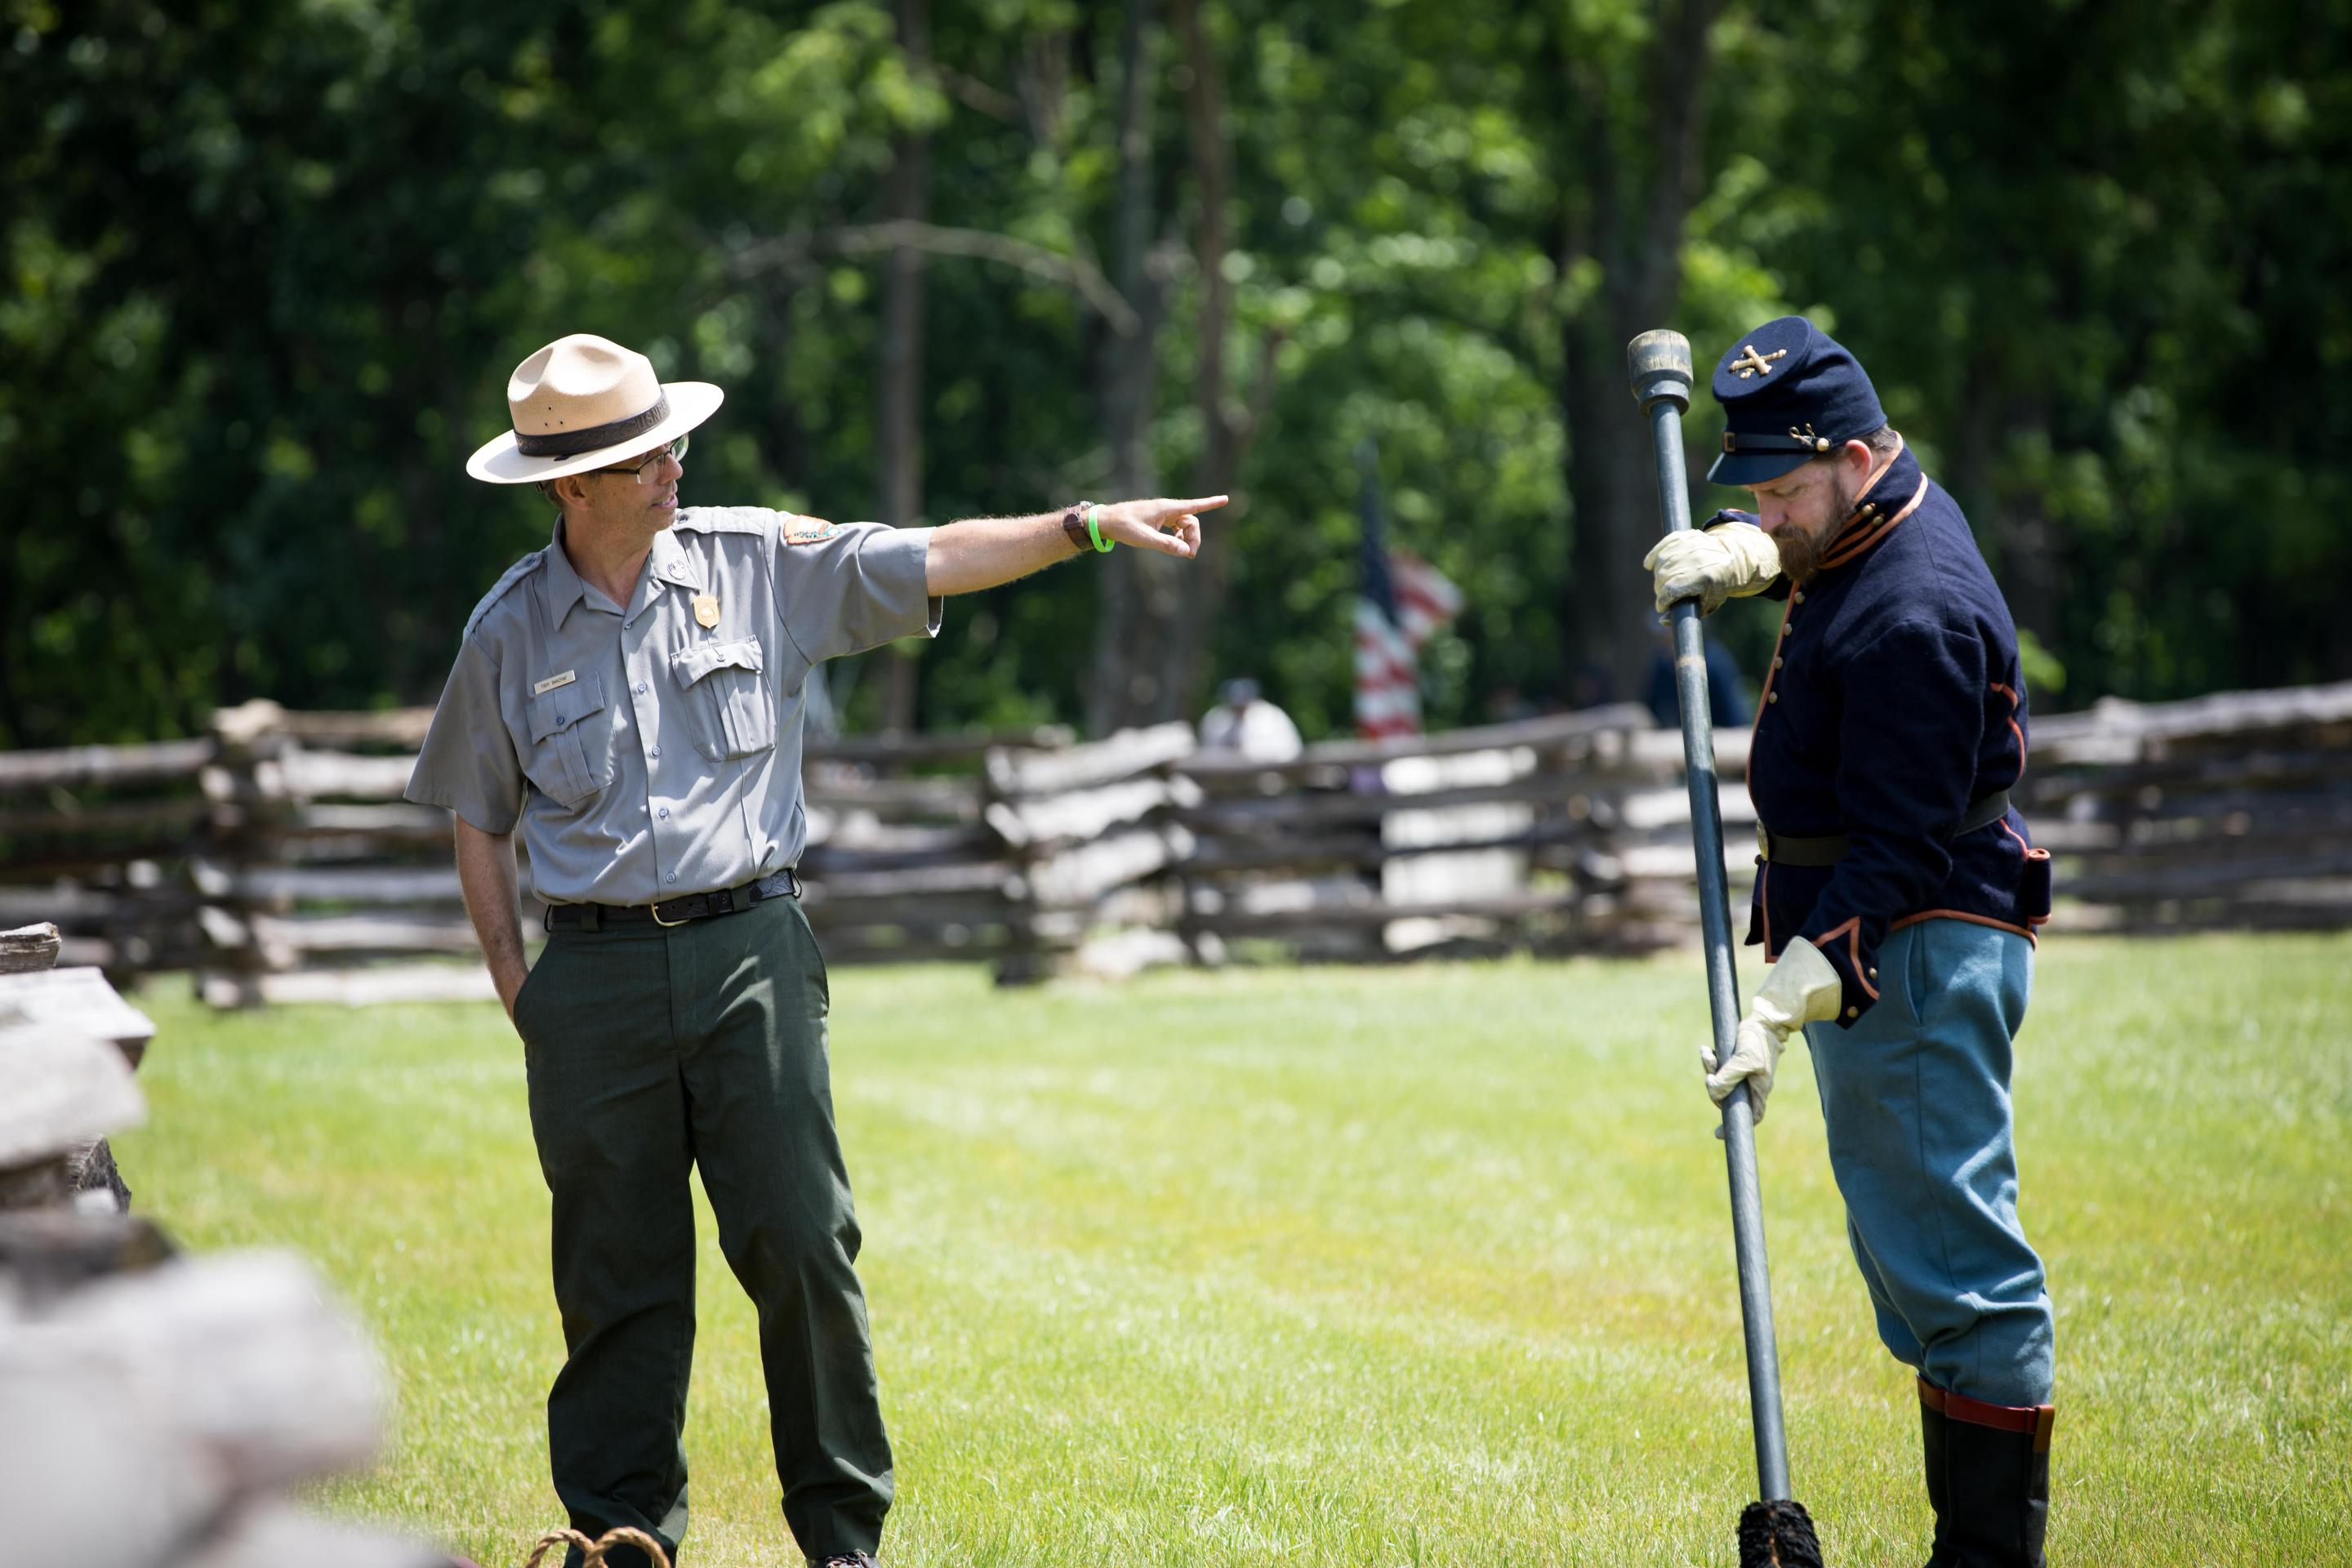 Park Ranger and Cannon CrewRanger Troy Banzhaf giving information about 6 lb. cannon and cannon crew.